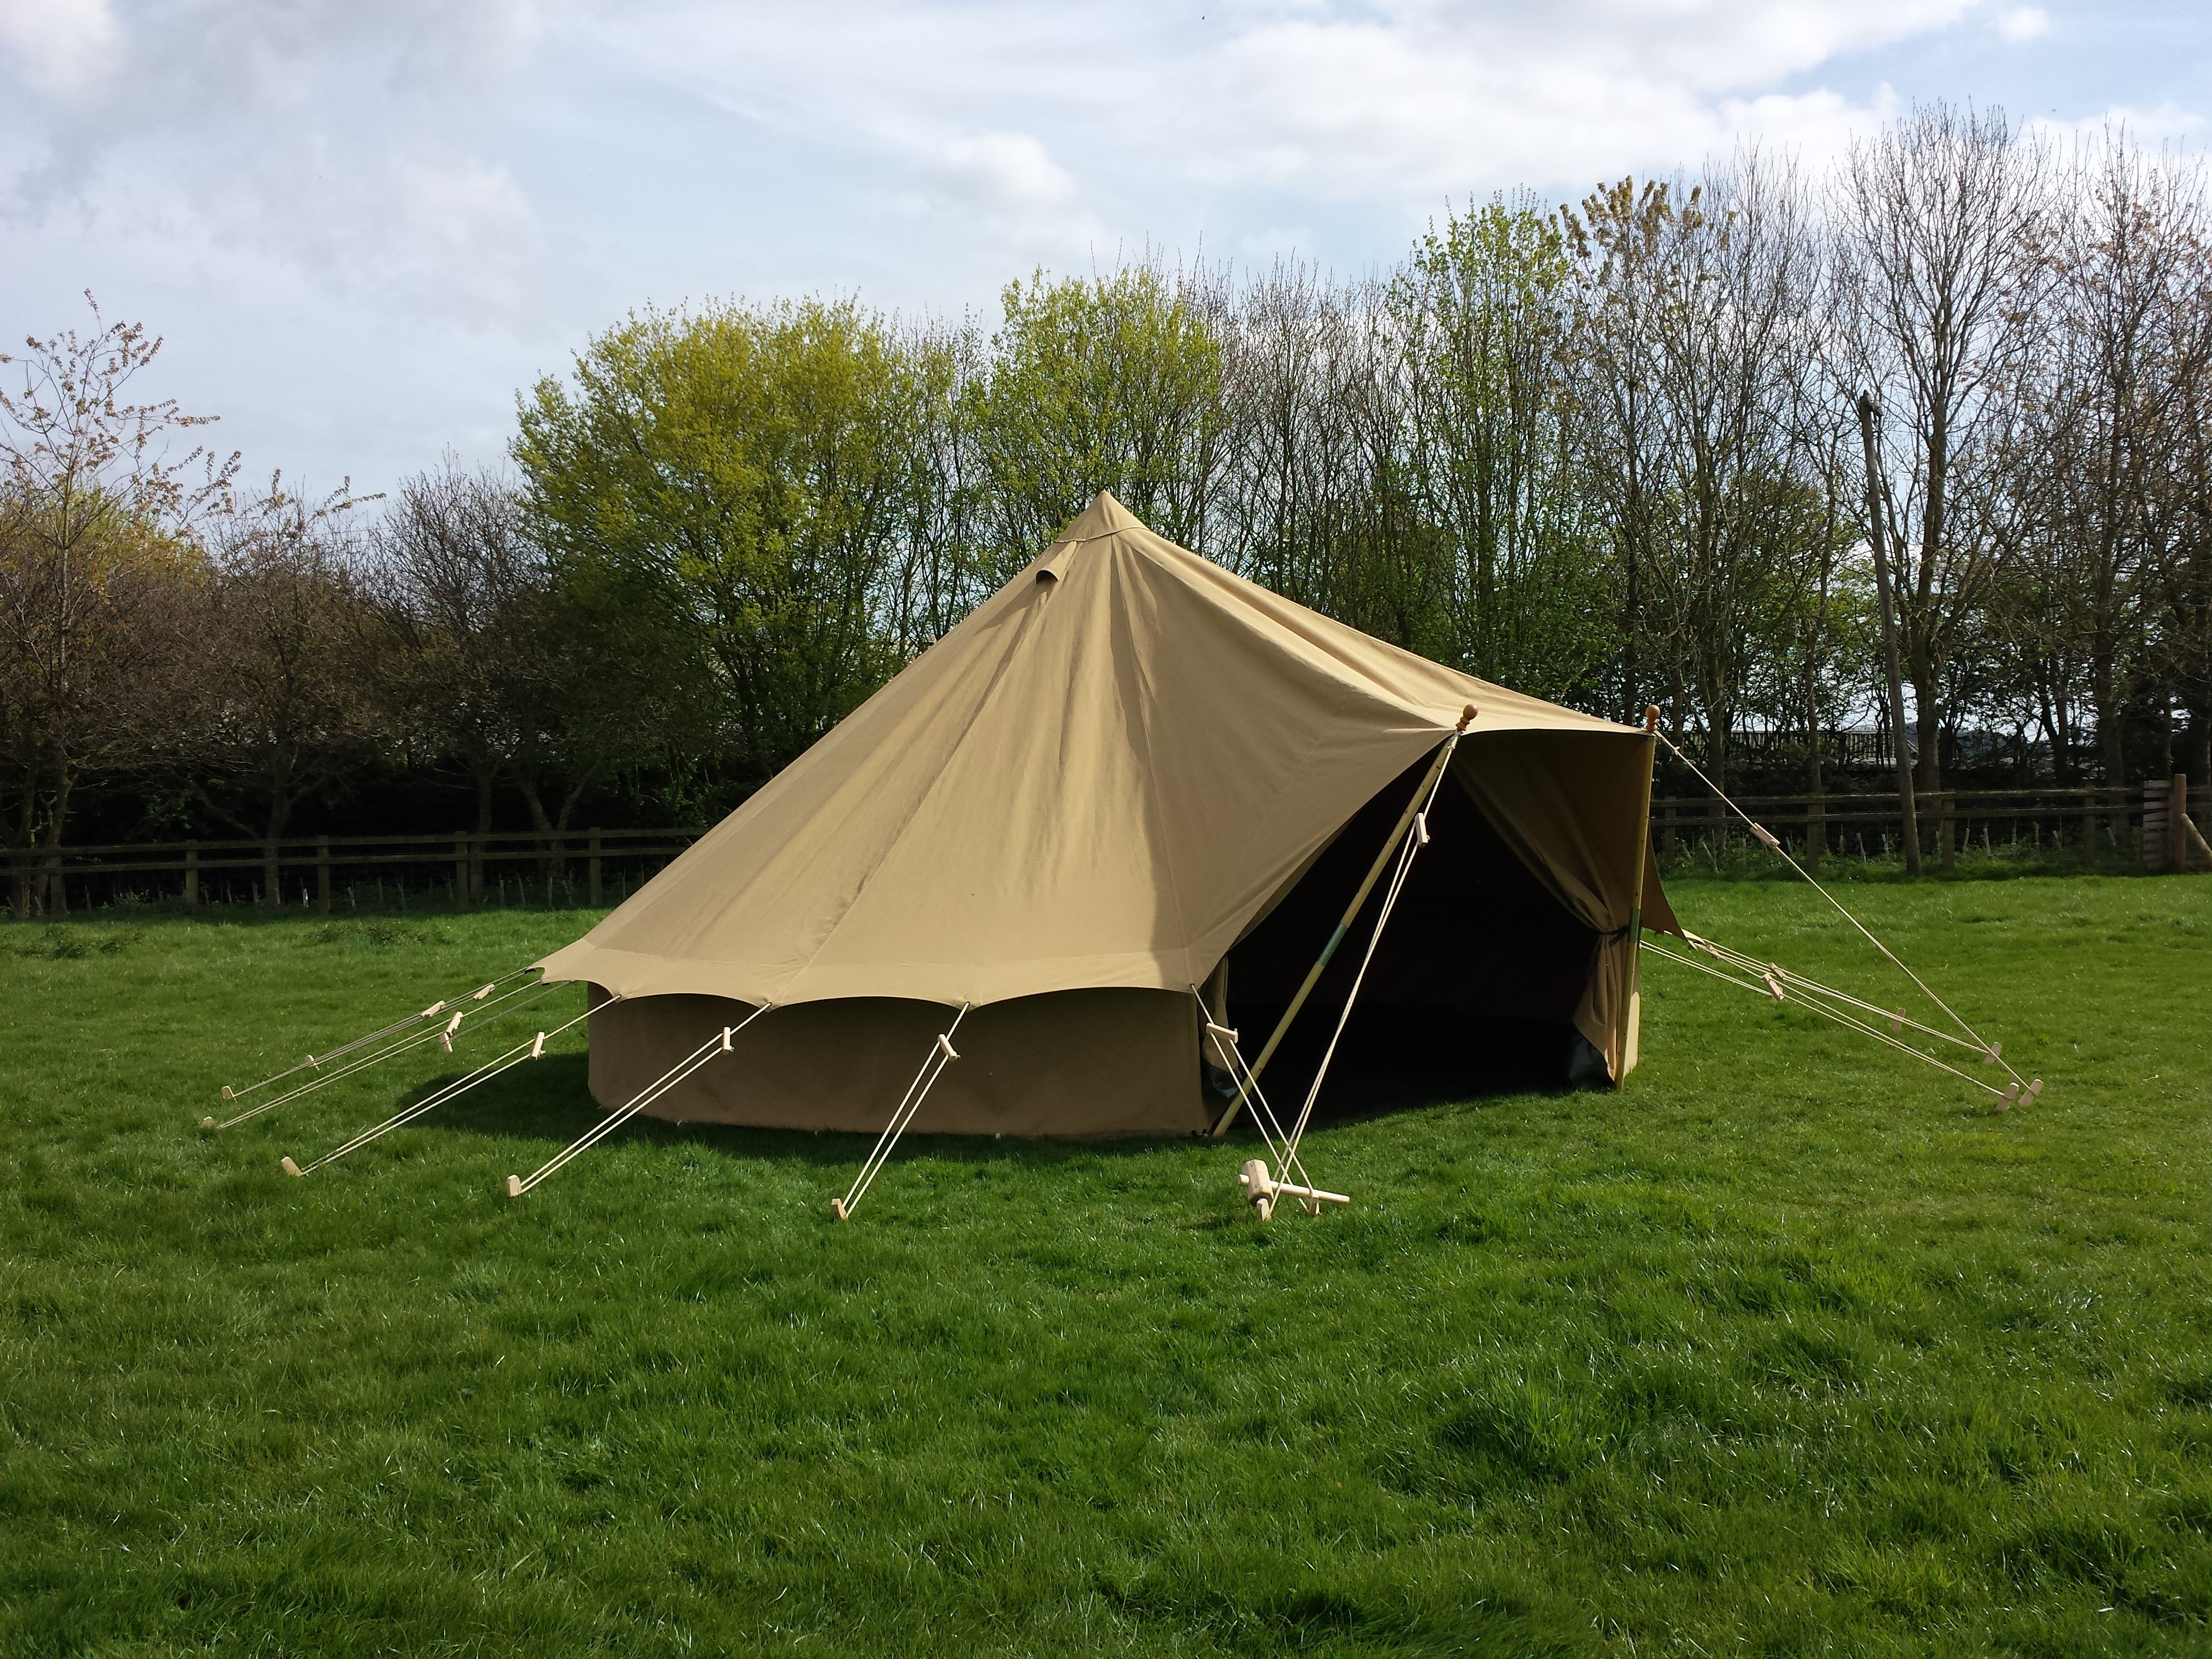 Representative ex&le. You can borrow £3000 over 12 months with 12 monthly repayments of £250.00. Total amount repayable will be £3000. & Bell Tents - Game Fair Finance - The Game Fair